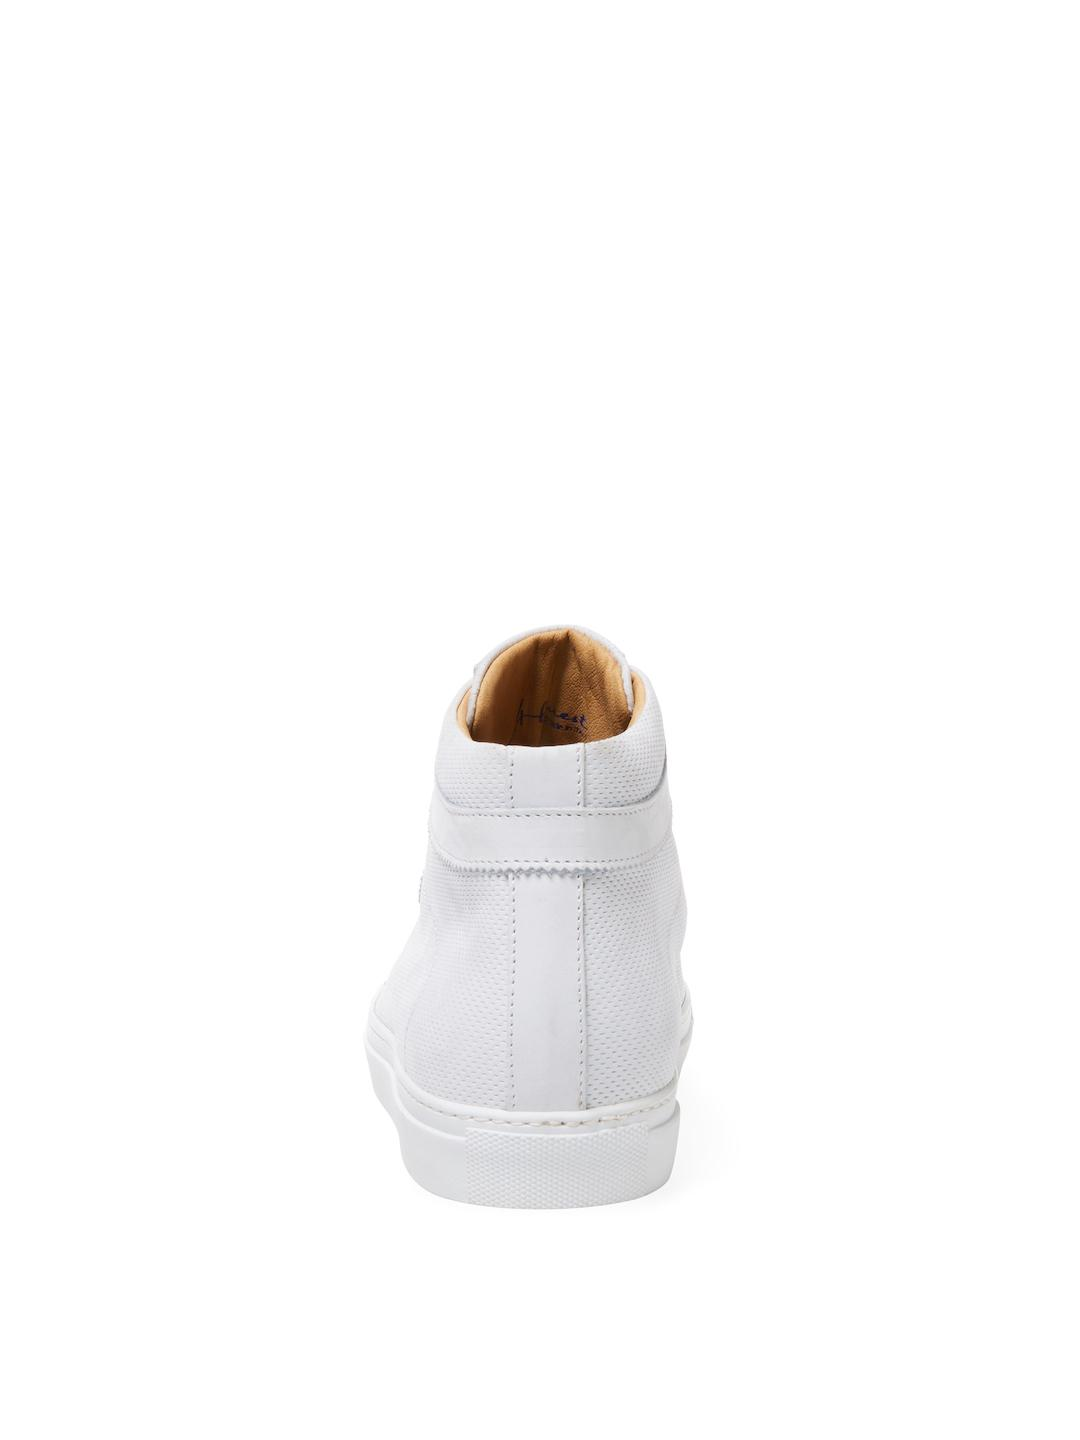 A'Louest Shaka Leather Hi-top in White for Men